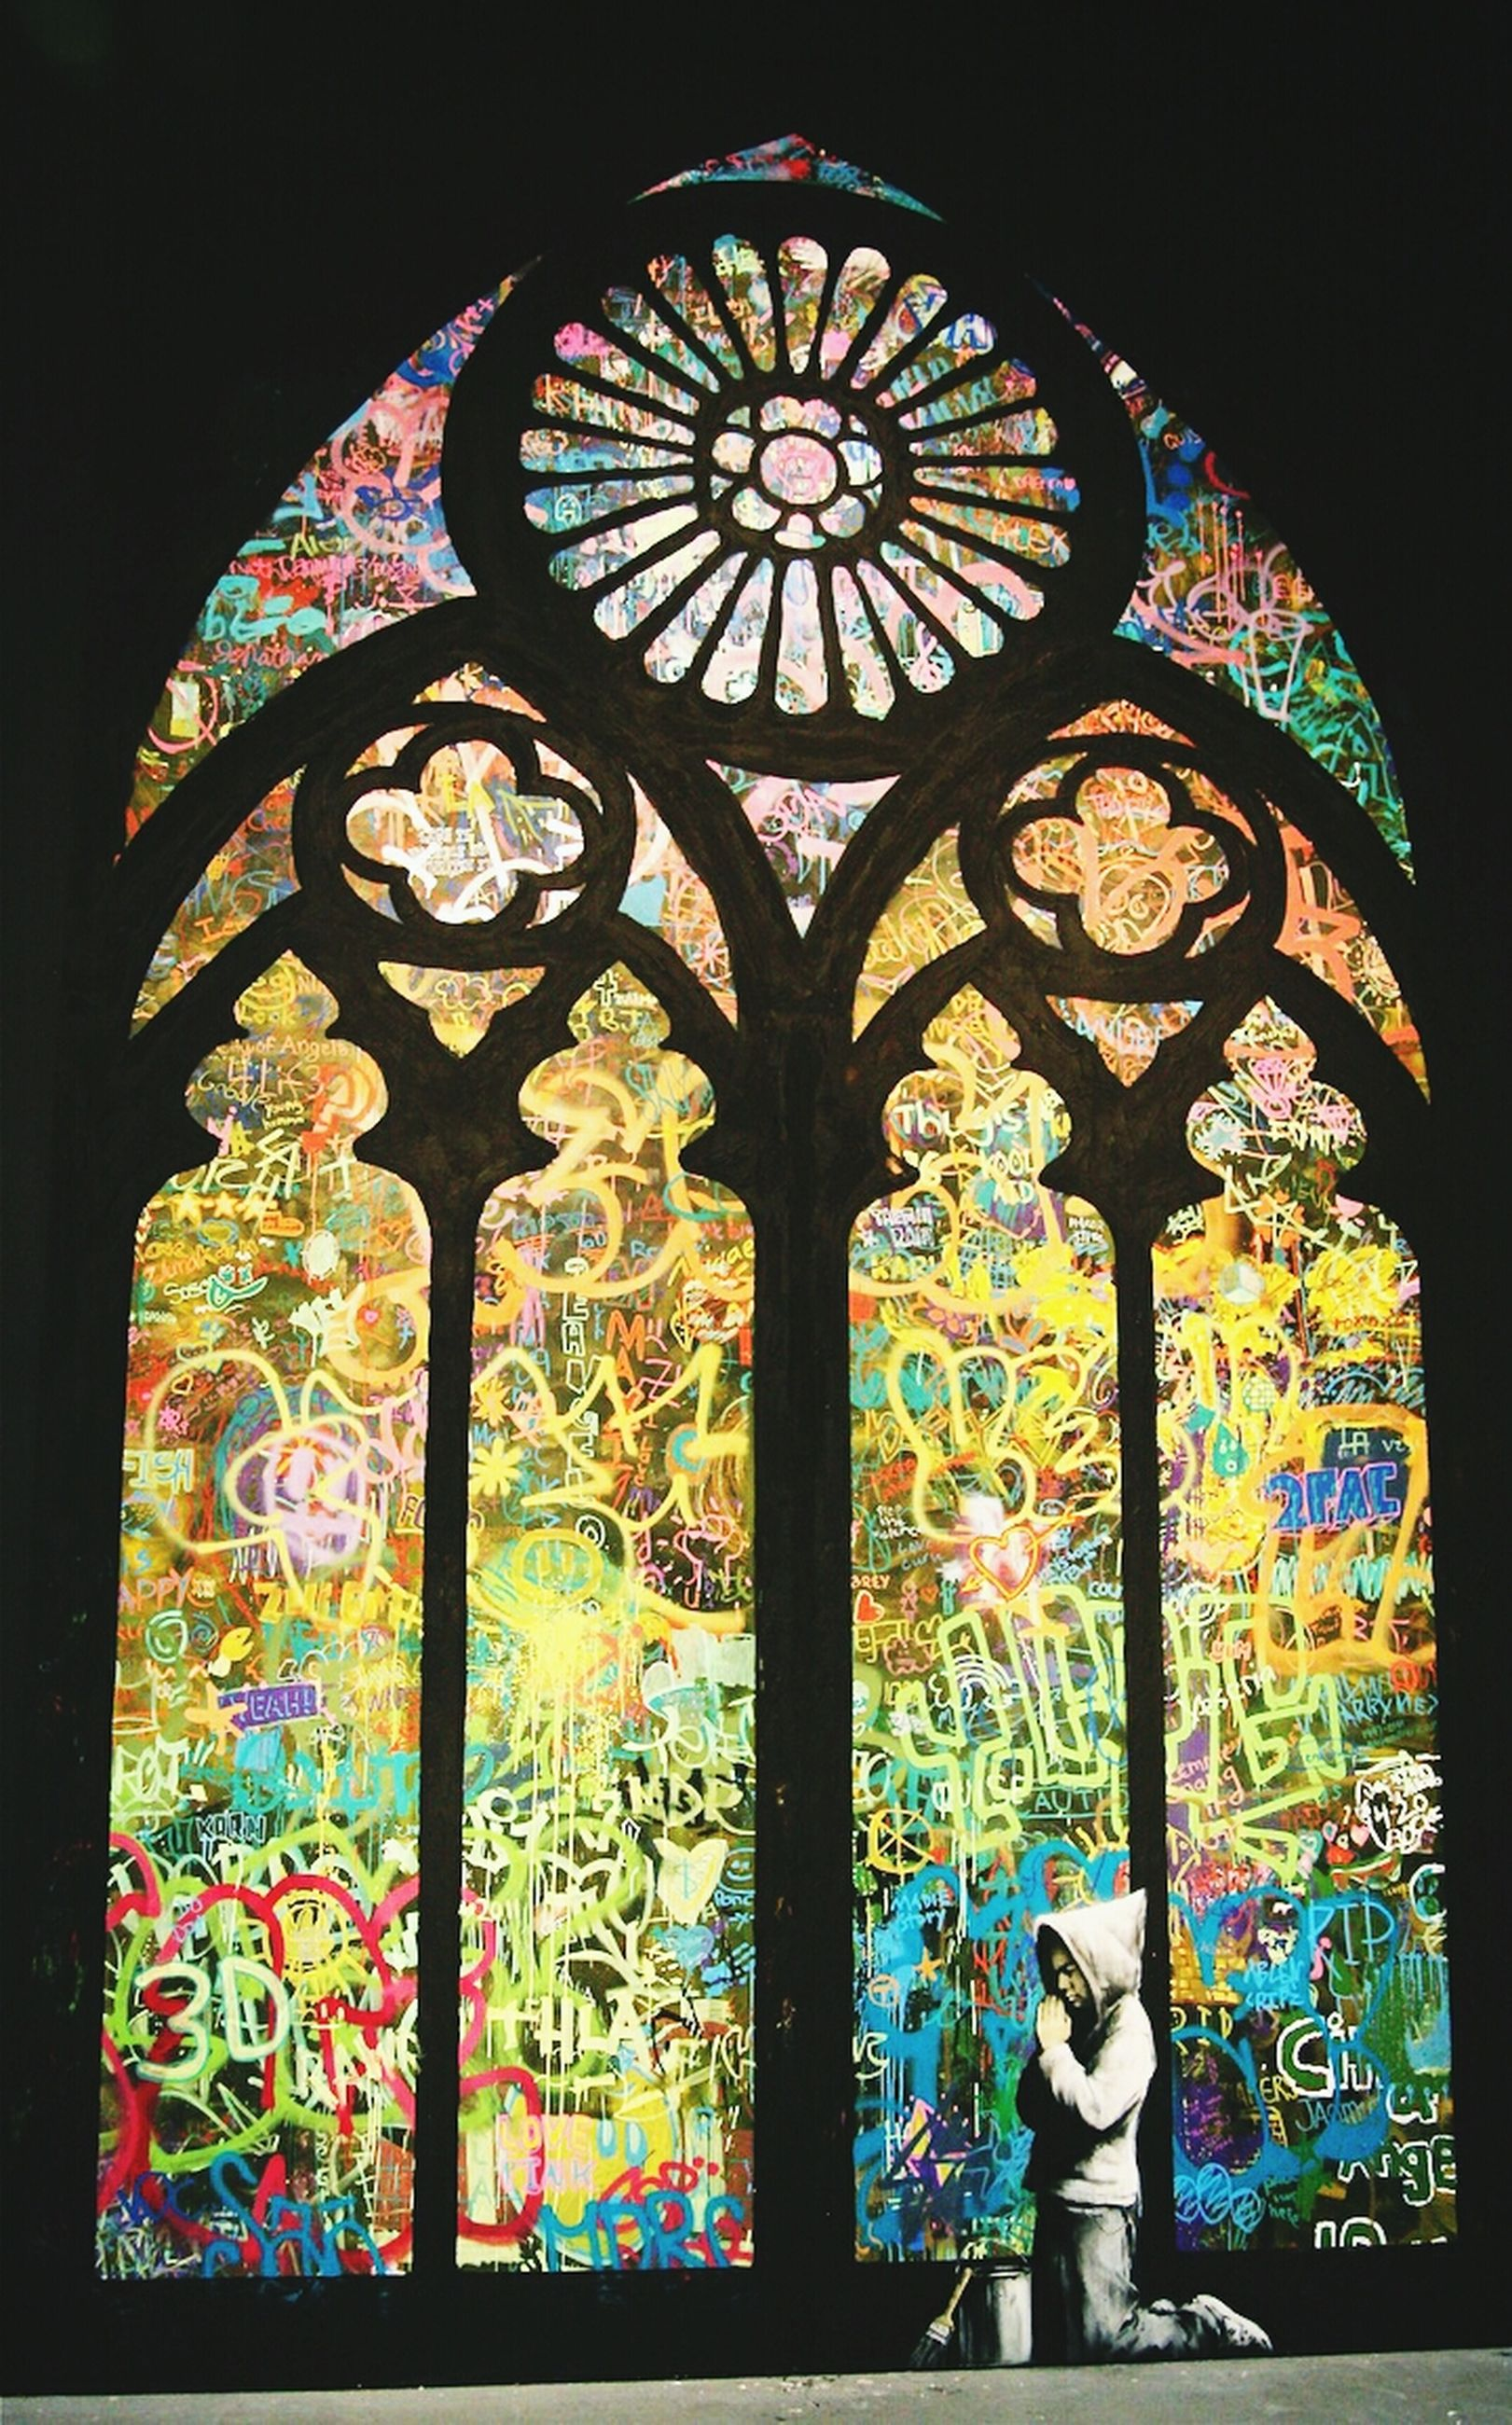 art and craft, art, place of worship, religion, creativity, multi colored, church, spirituality, indoors, human representation, low angle view, stained glass, architecture, built structure, ornate, design